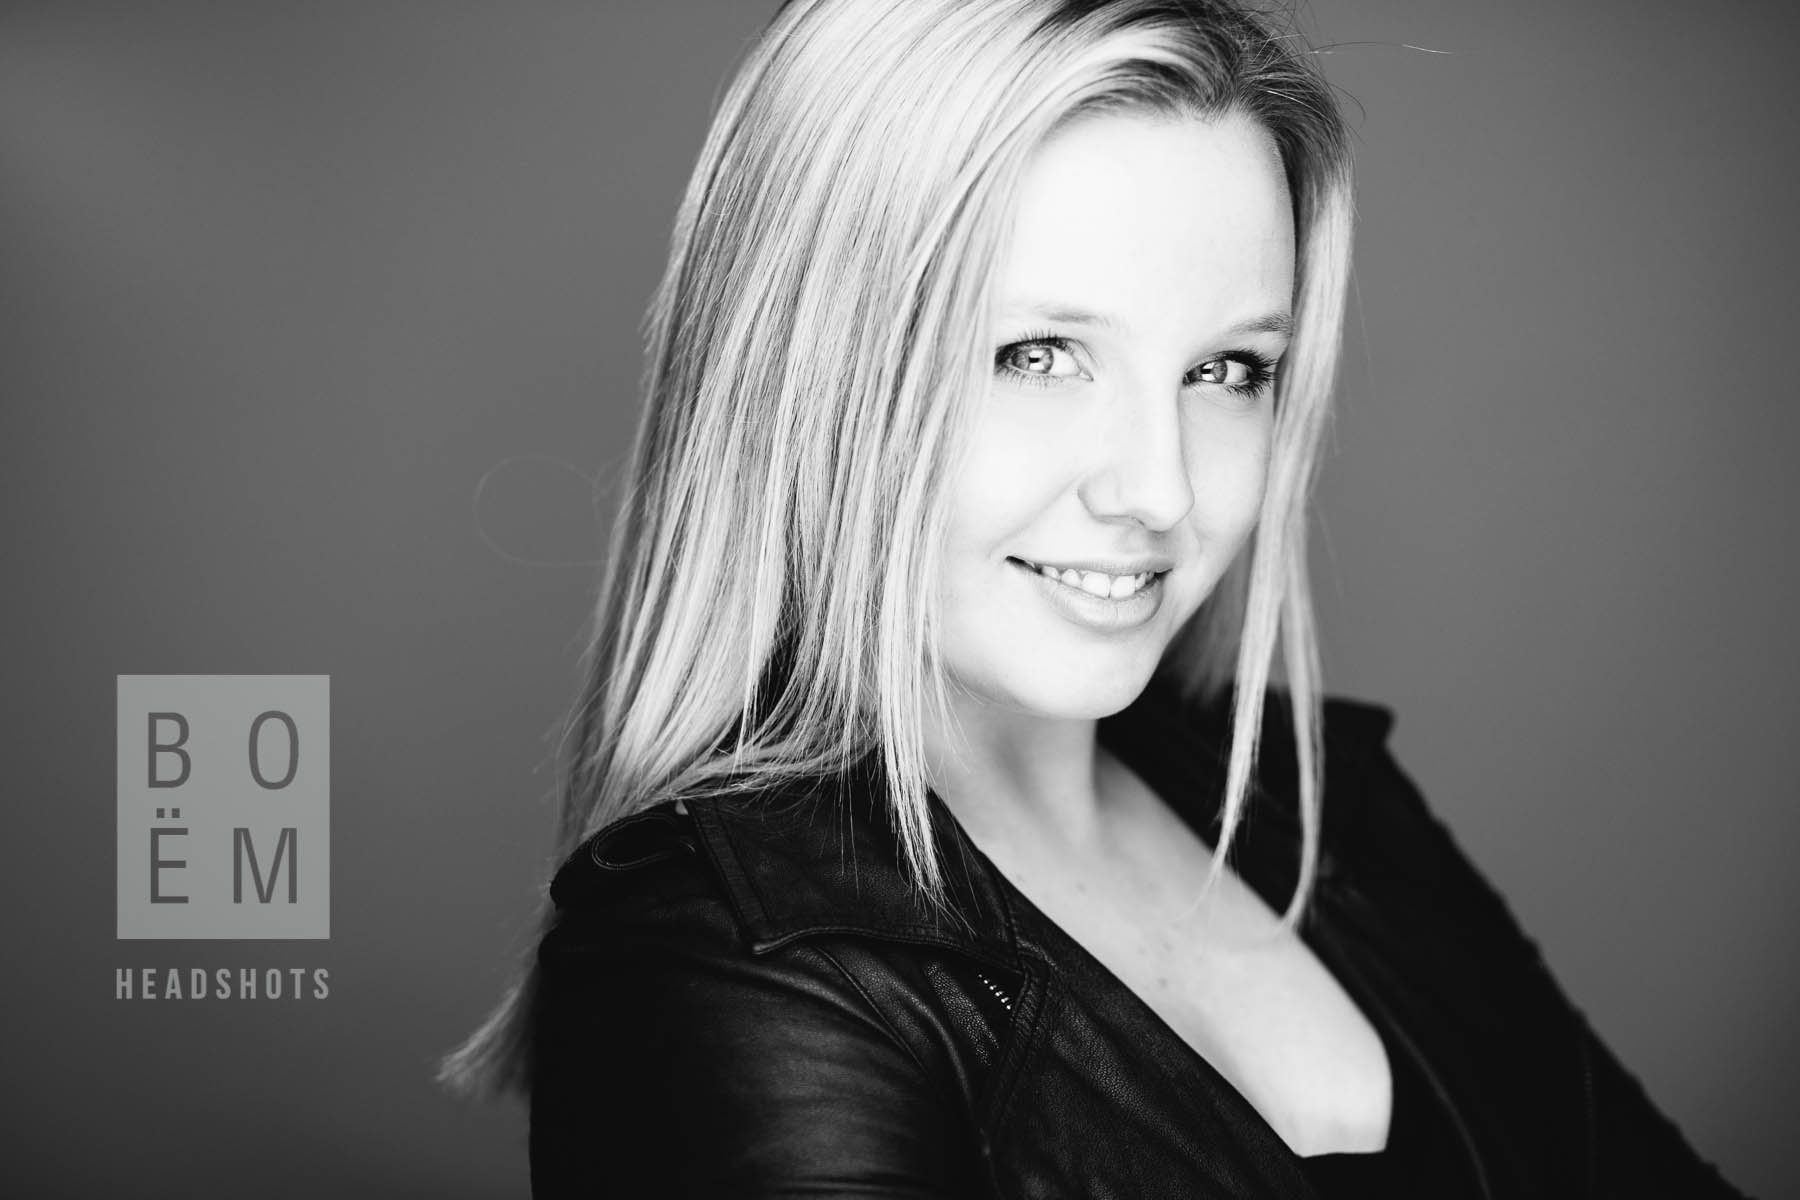 A Professional Headshot session for Ashleigh by Andre Gooden for Boem Headshots, the premier headshot photographer in Adelaide